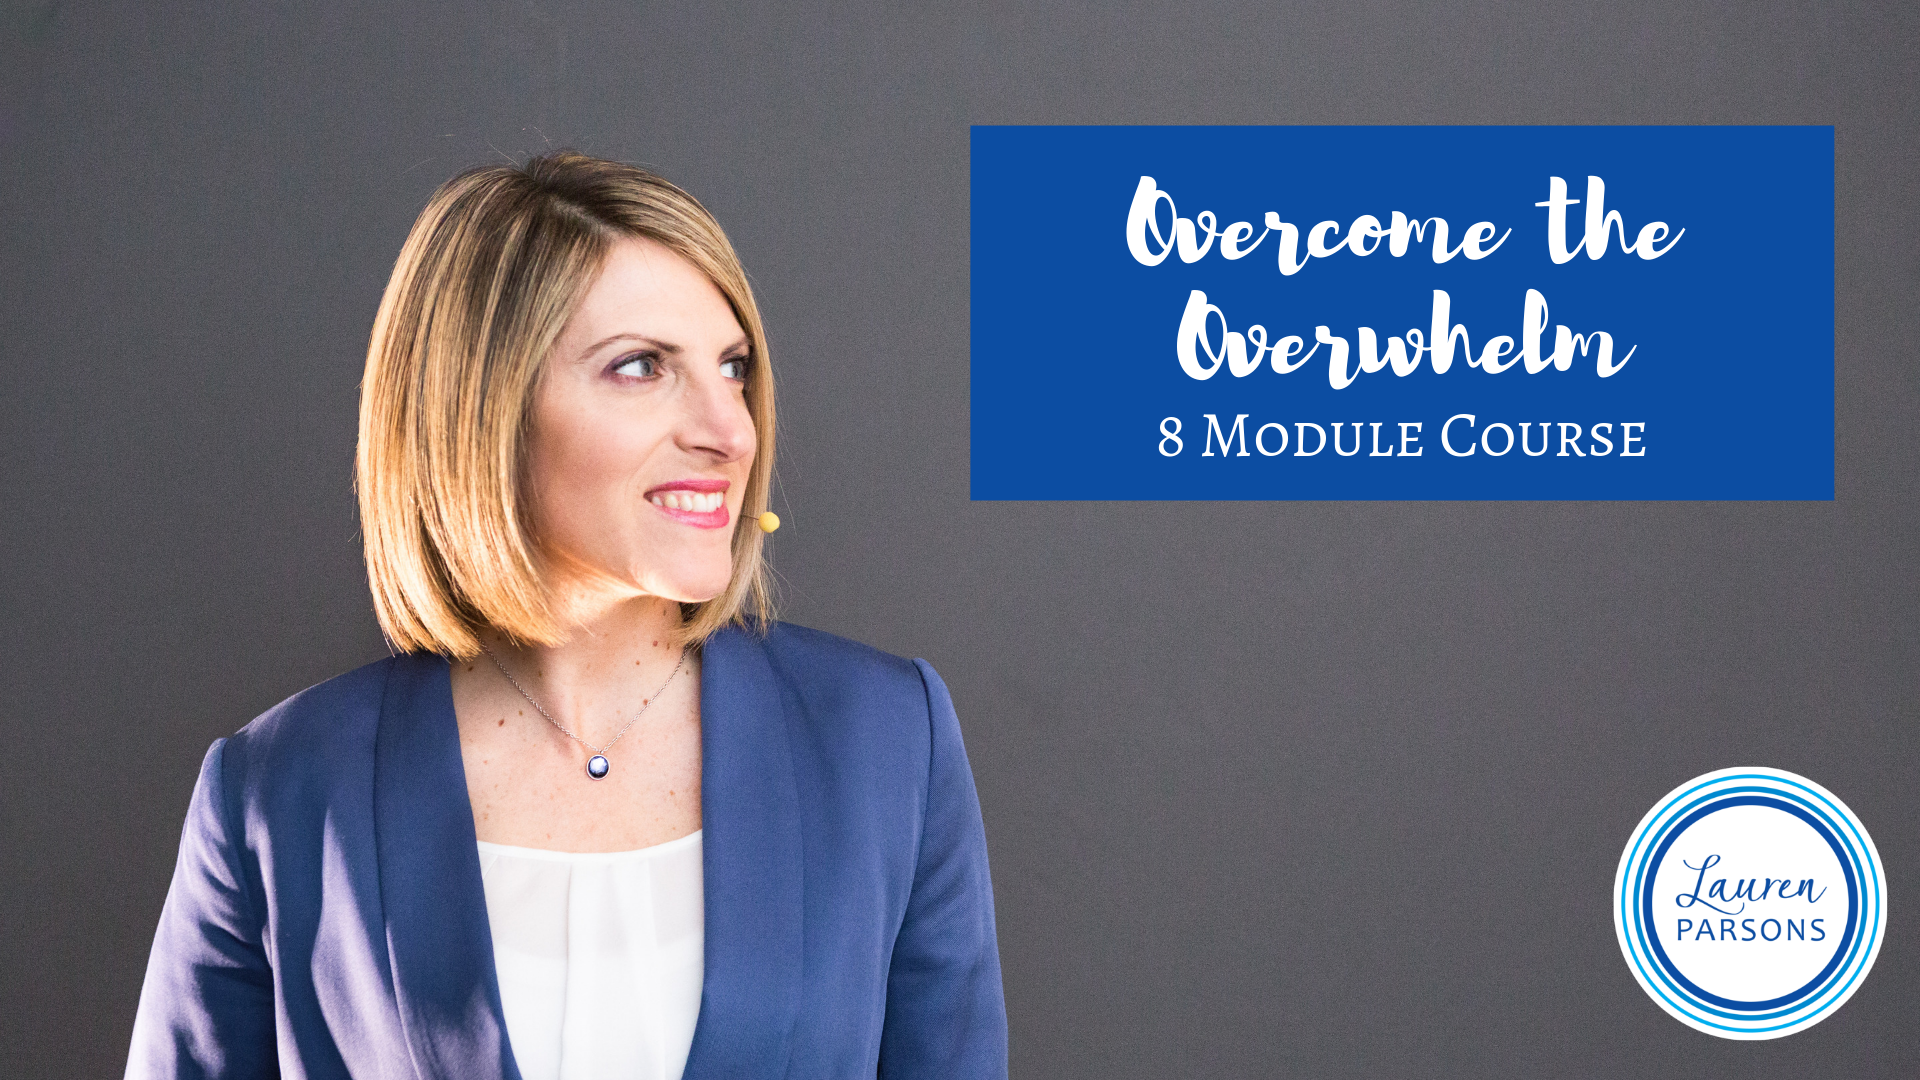 Lauren Parsons Workplace Wellbeing Training - Overcome the Overwhelm